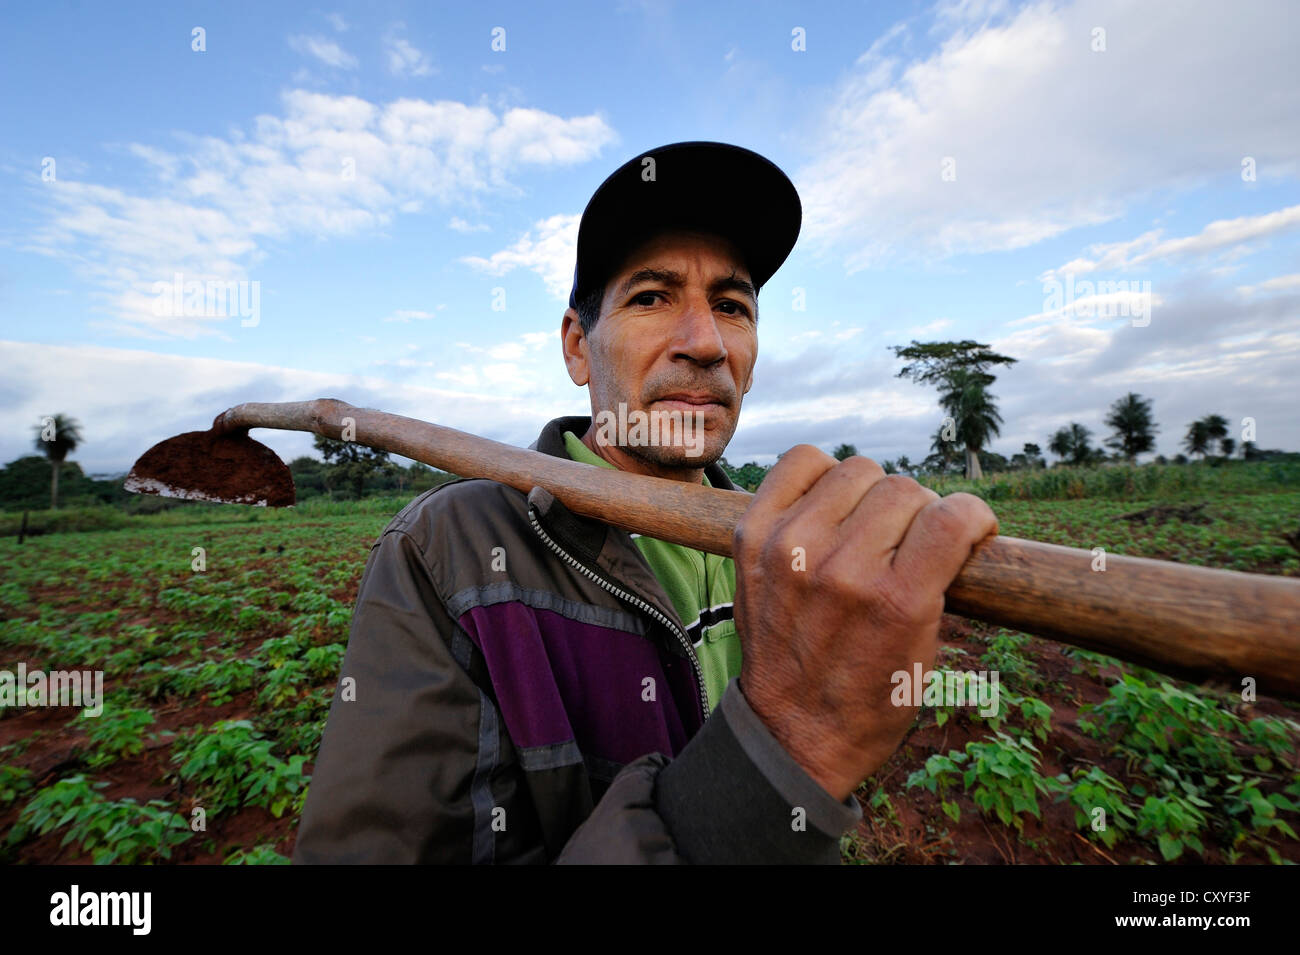 Smallholder carrying a hoe on his field of beans, Comunidad Arroyito, Departamento Concepcion, Paraguay, South America Stock Photo